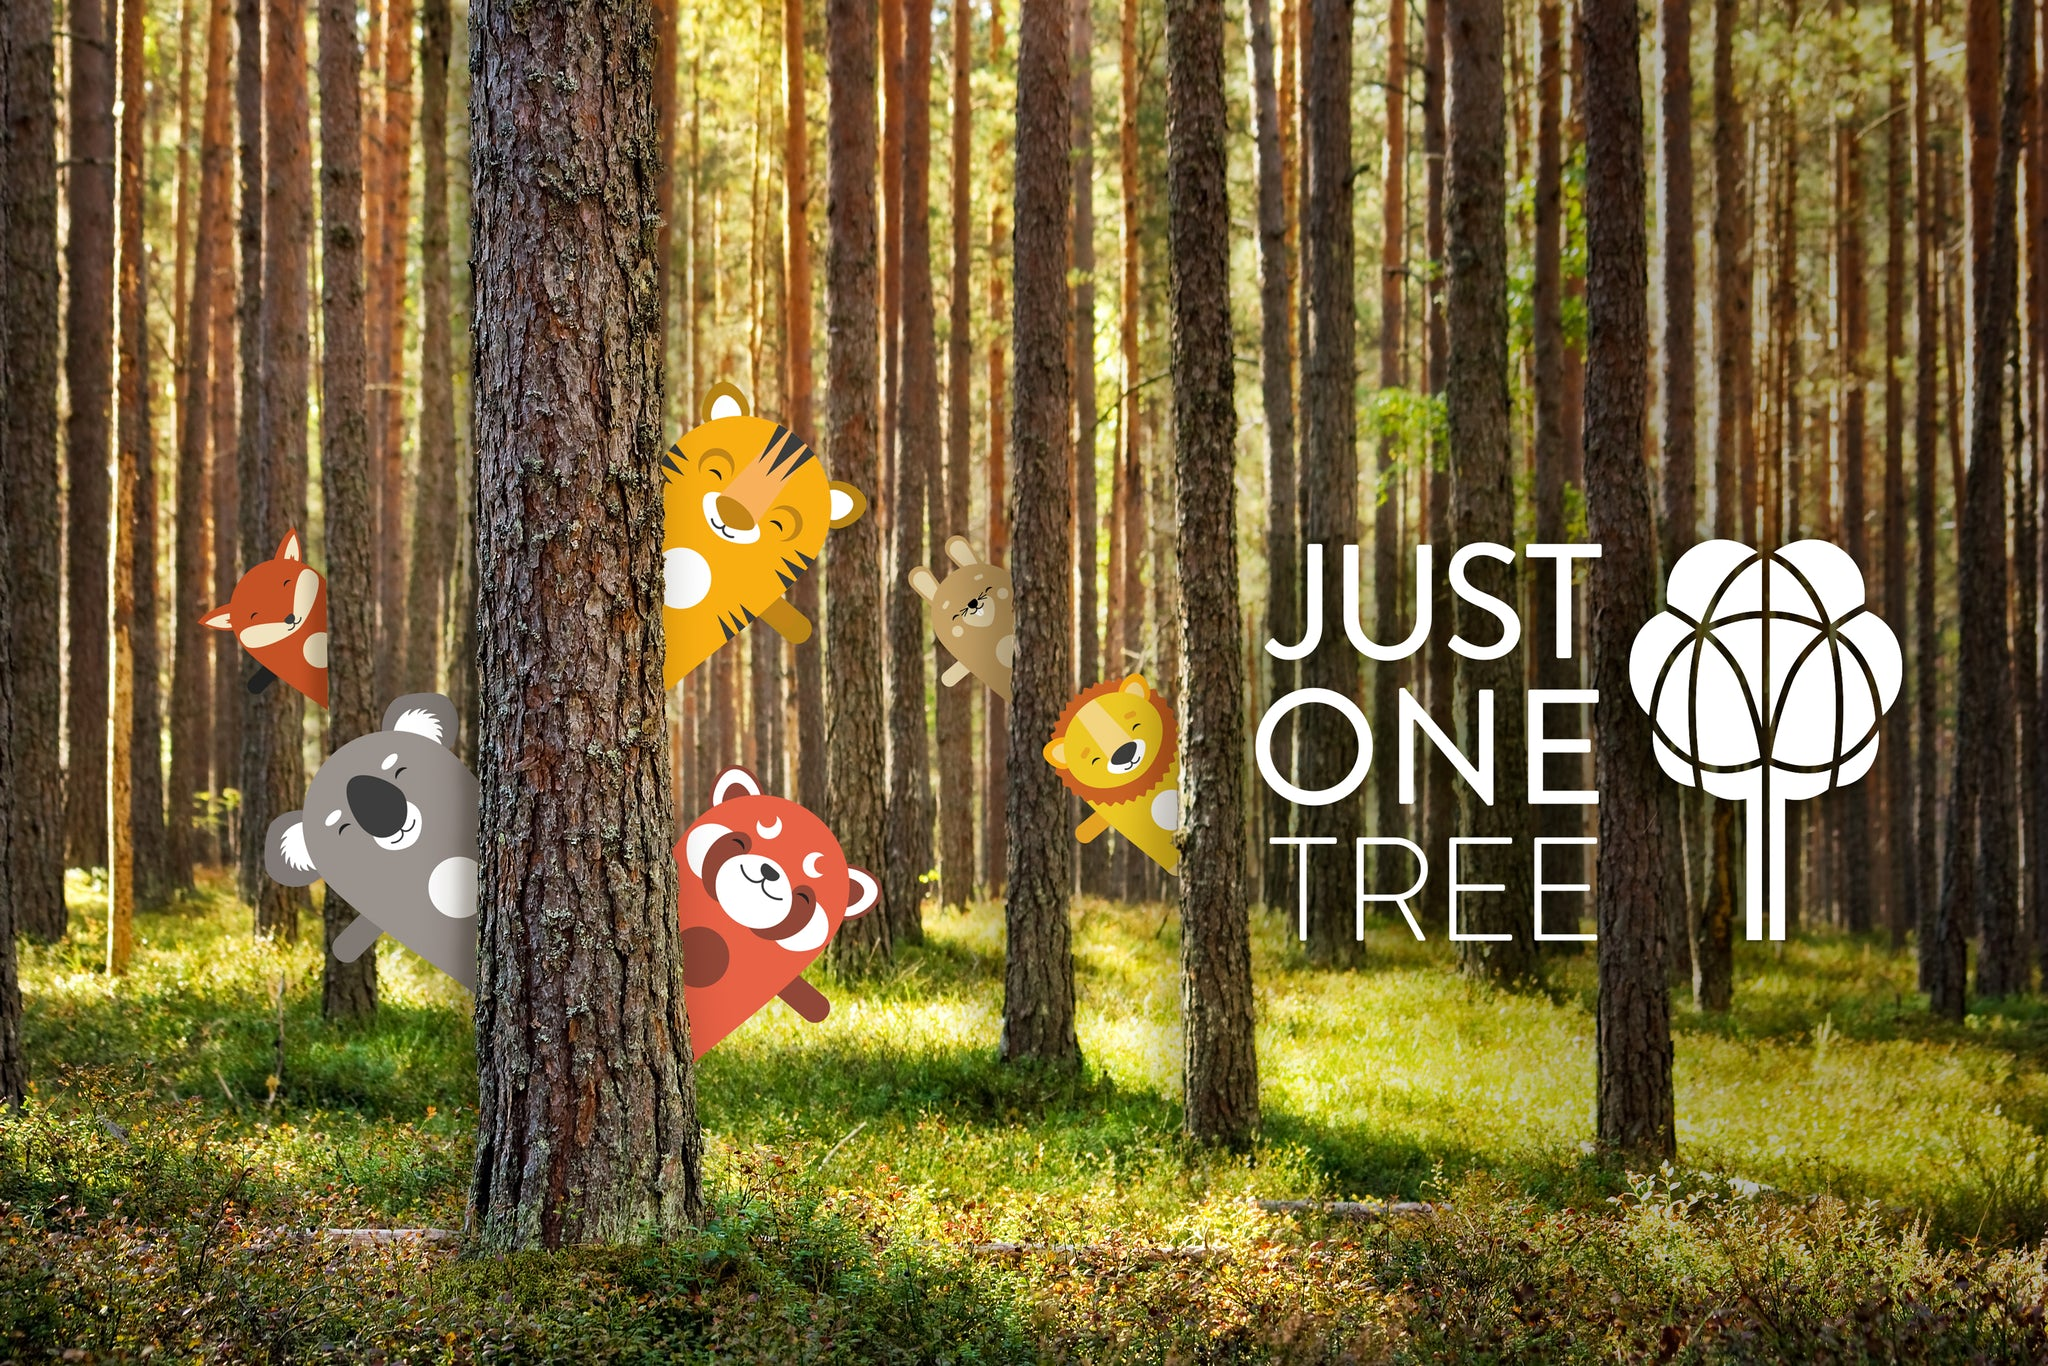 OddlyWild in partnership with Just One Tree campaign